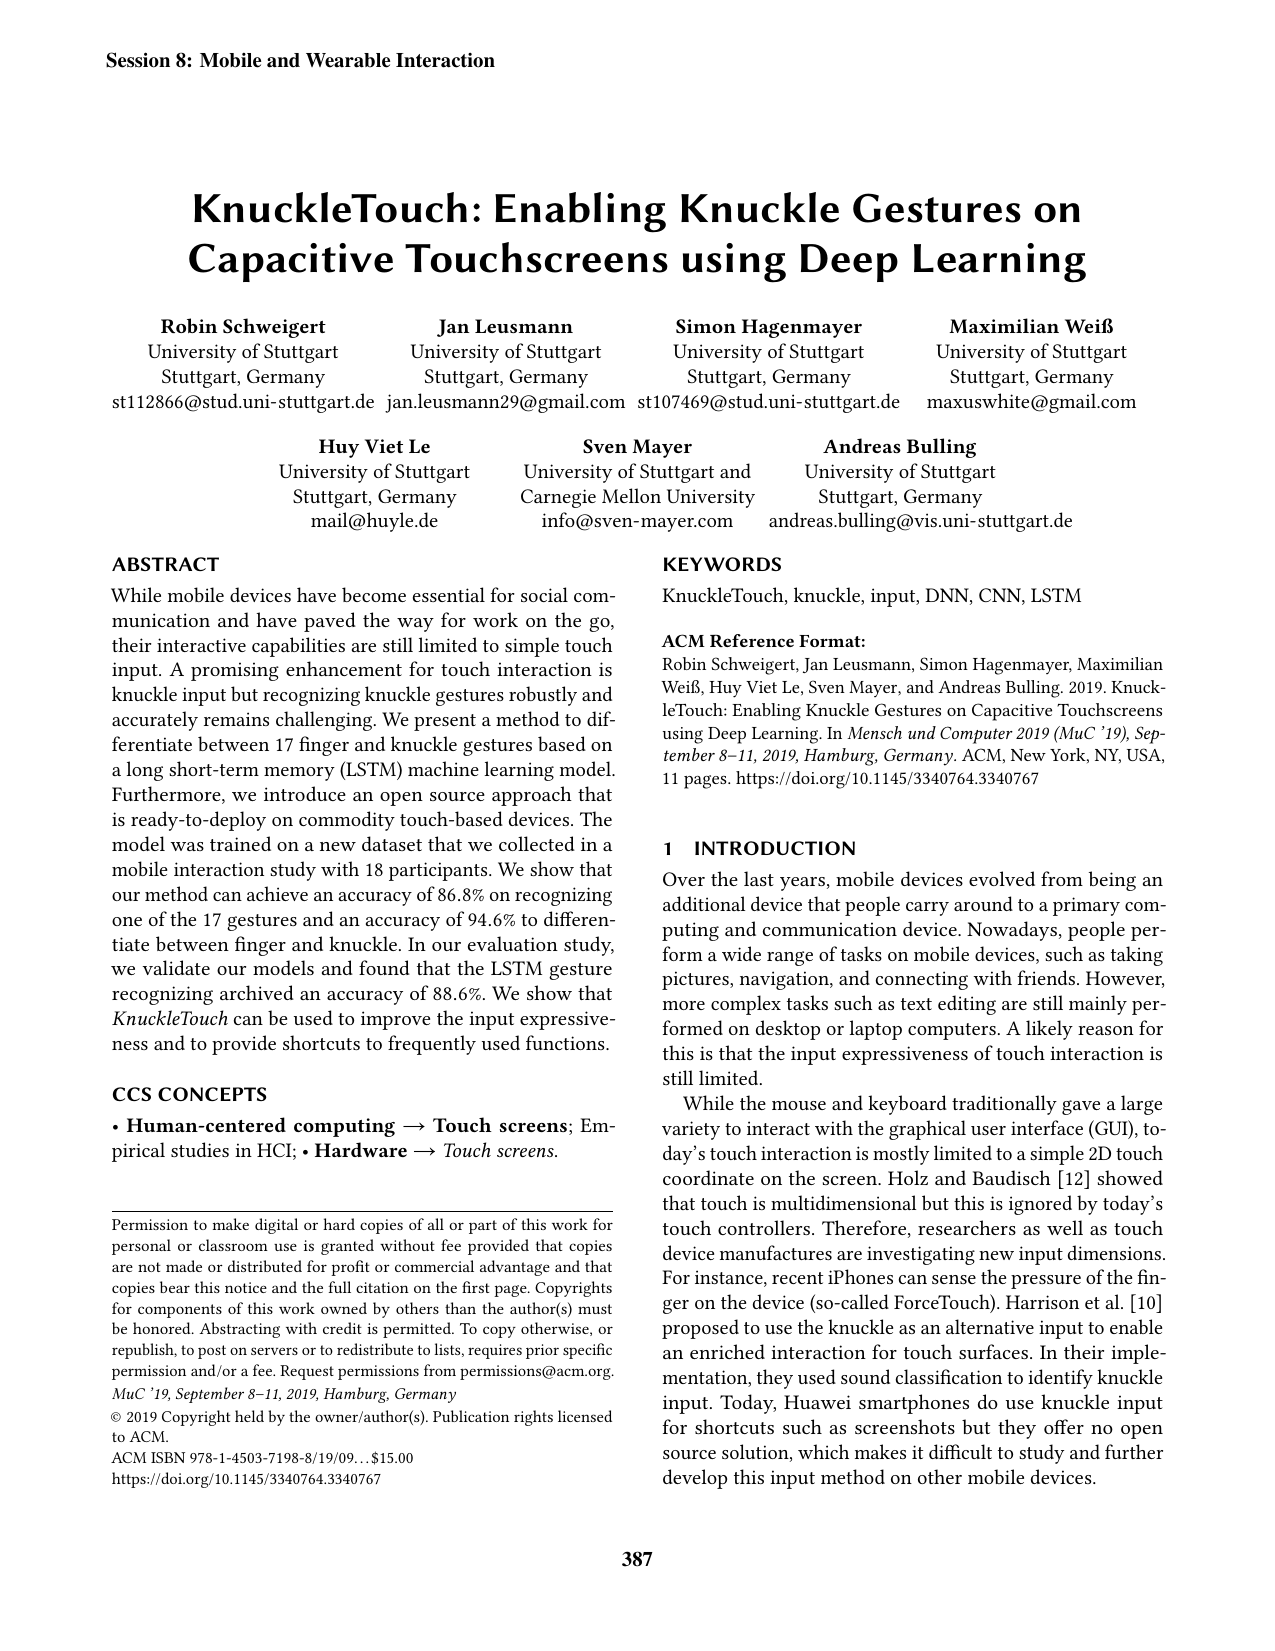 KnuckleTouch: Enabling Knuckle Gestures on Capacitive Touchscreens using Deep Learning